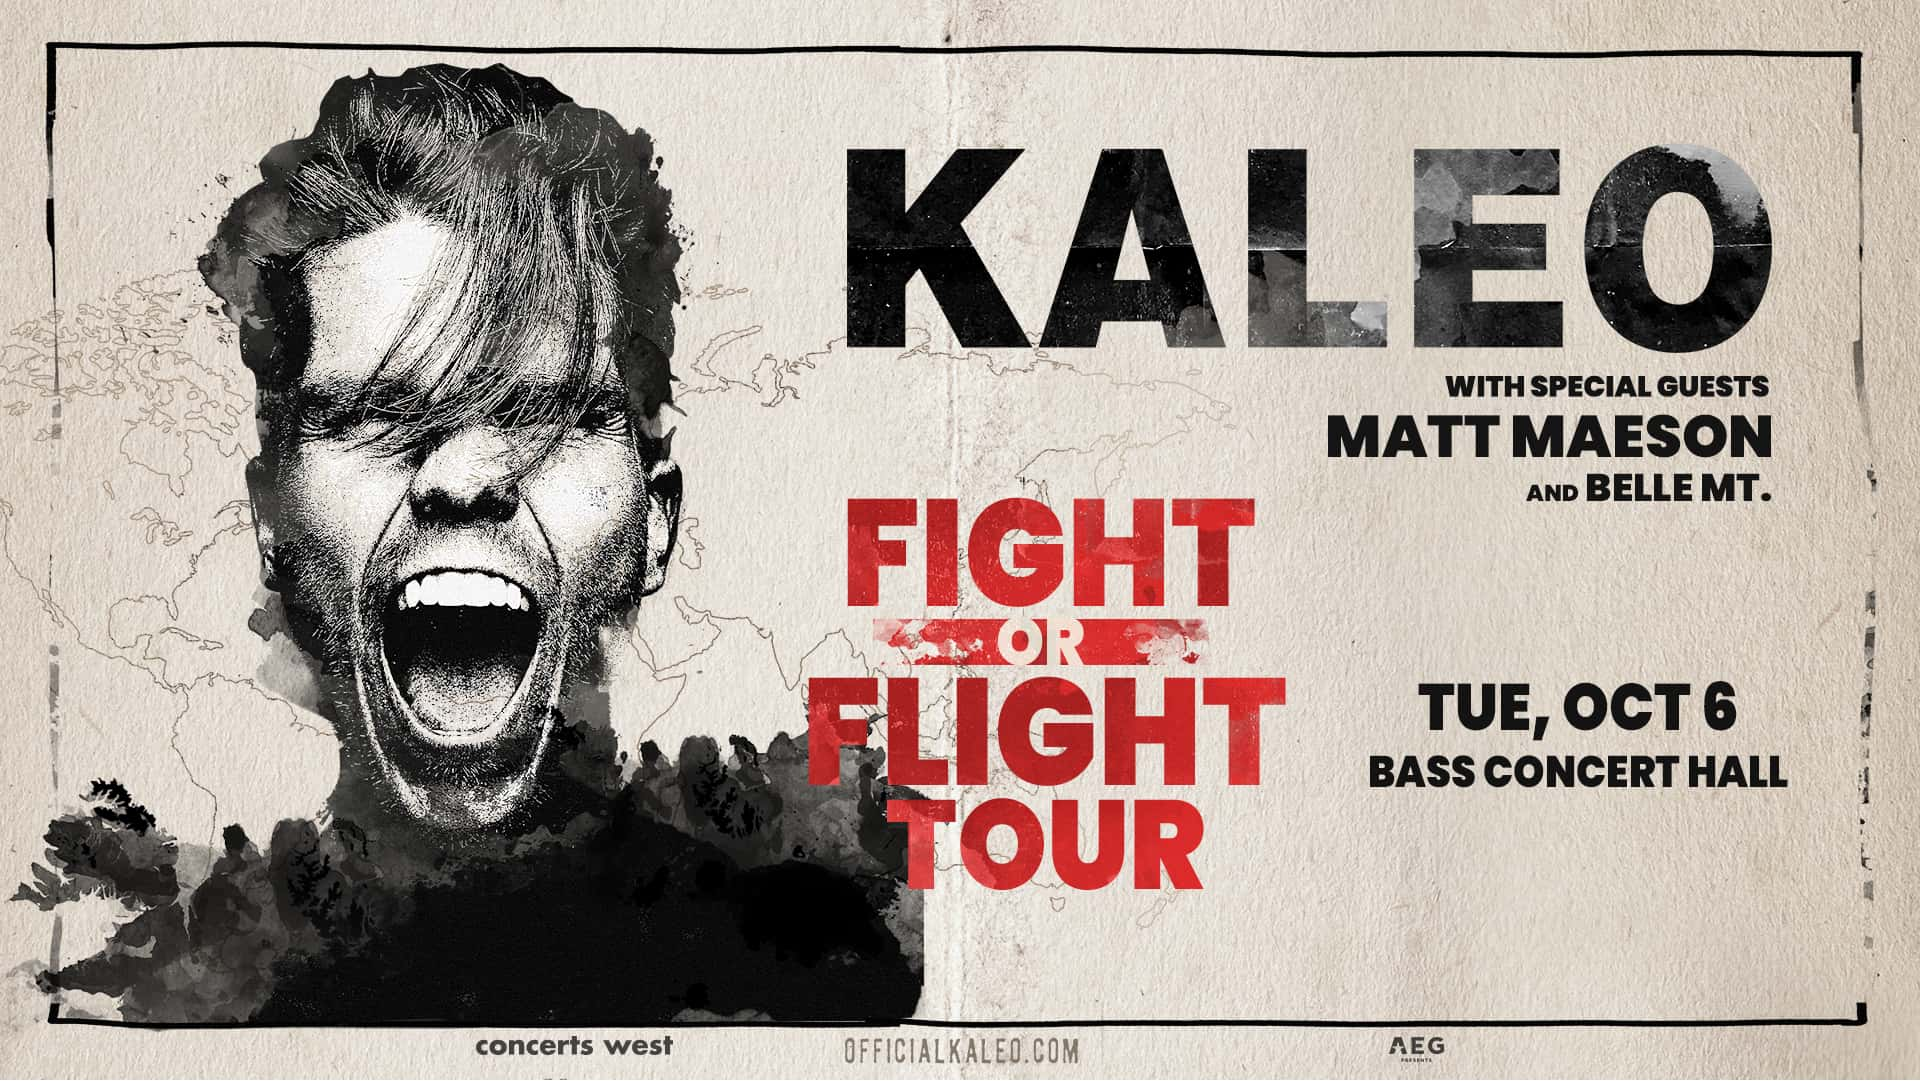 Kaleo with Matt Maeson and Belle Mt.